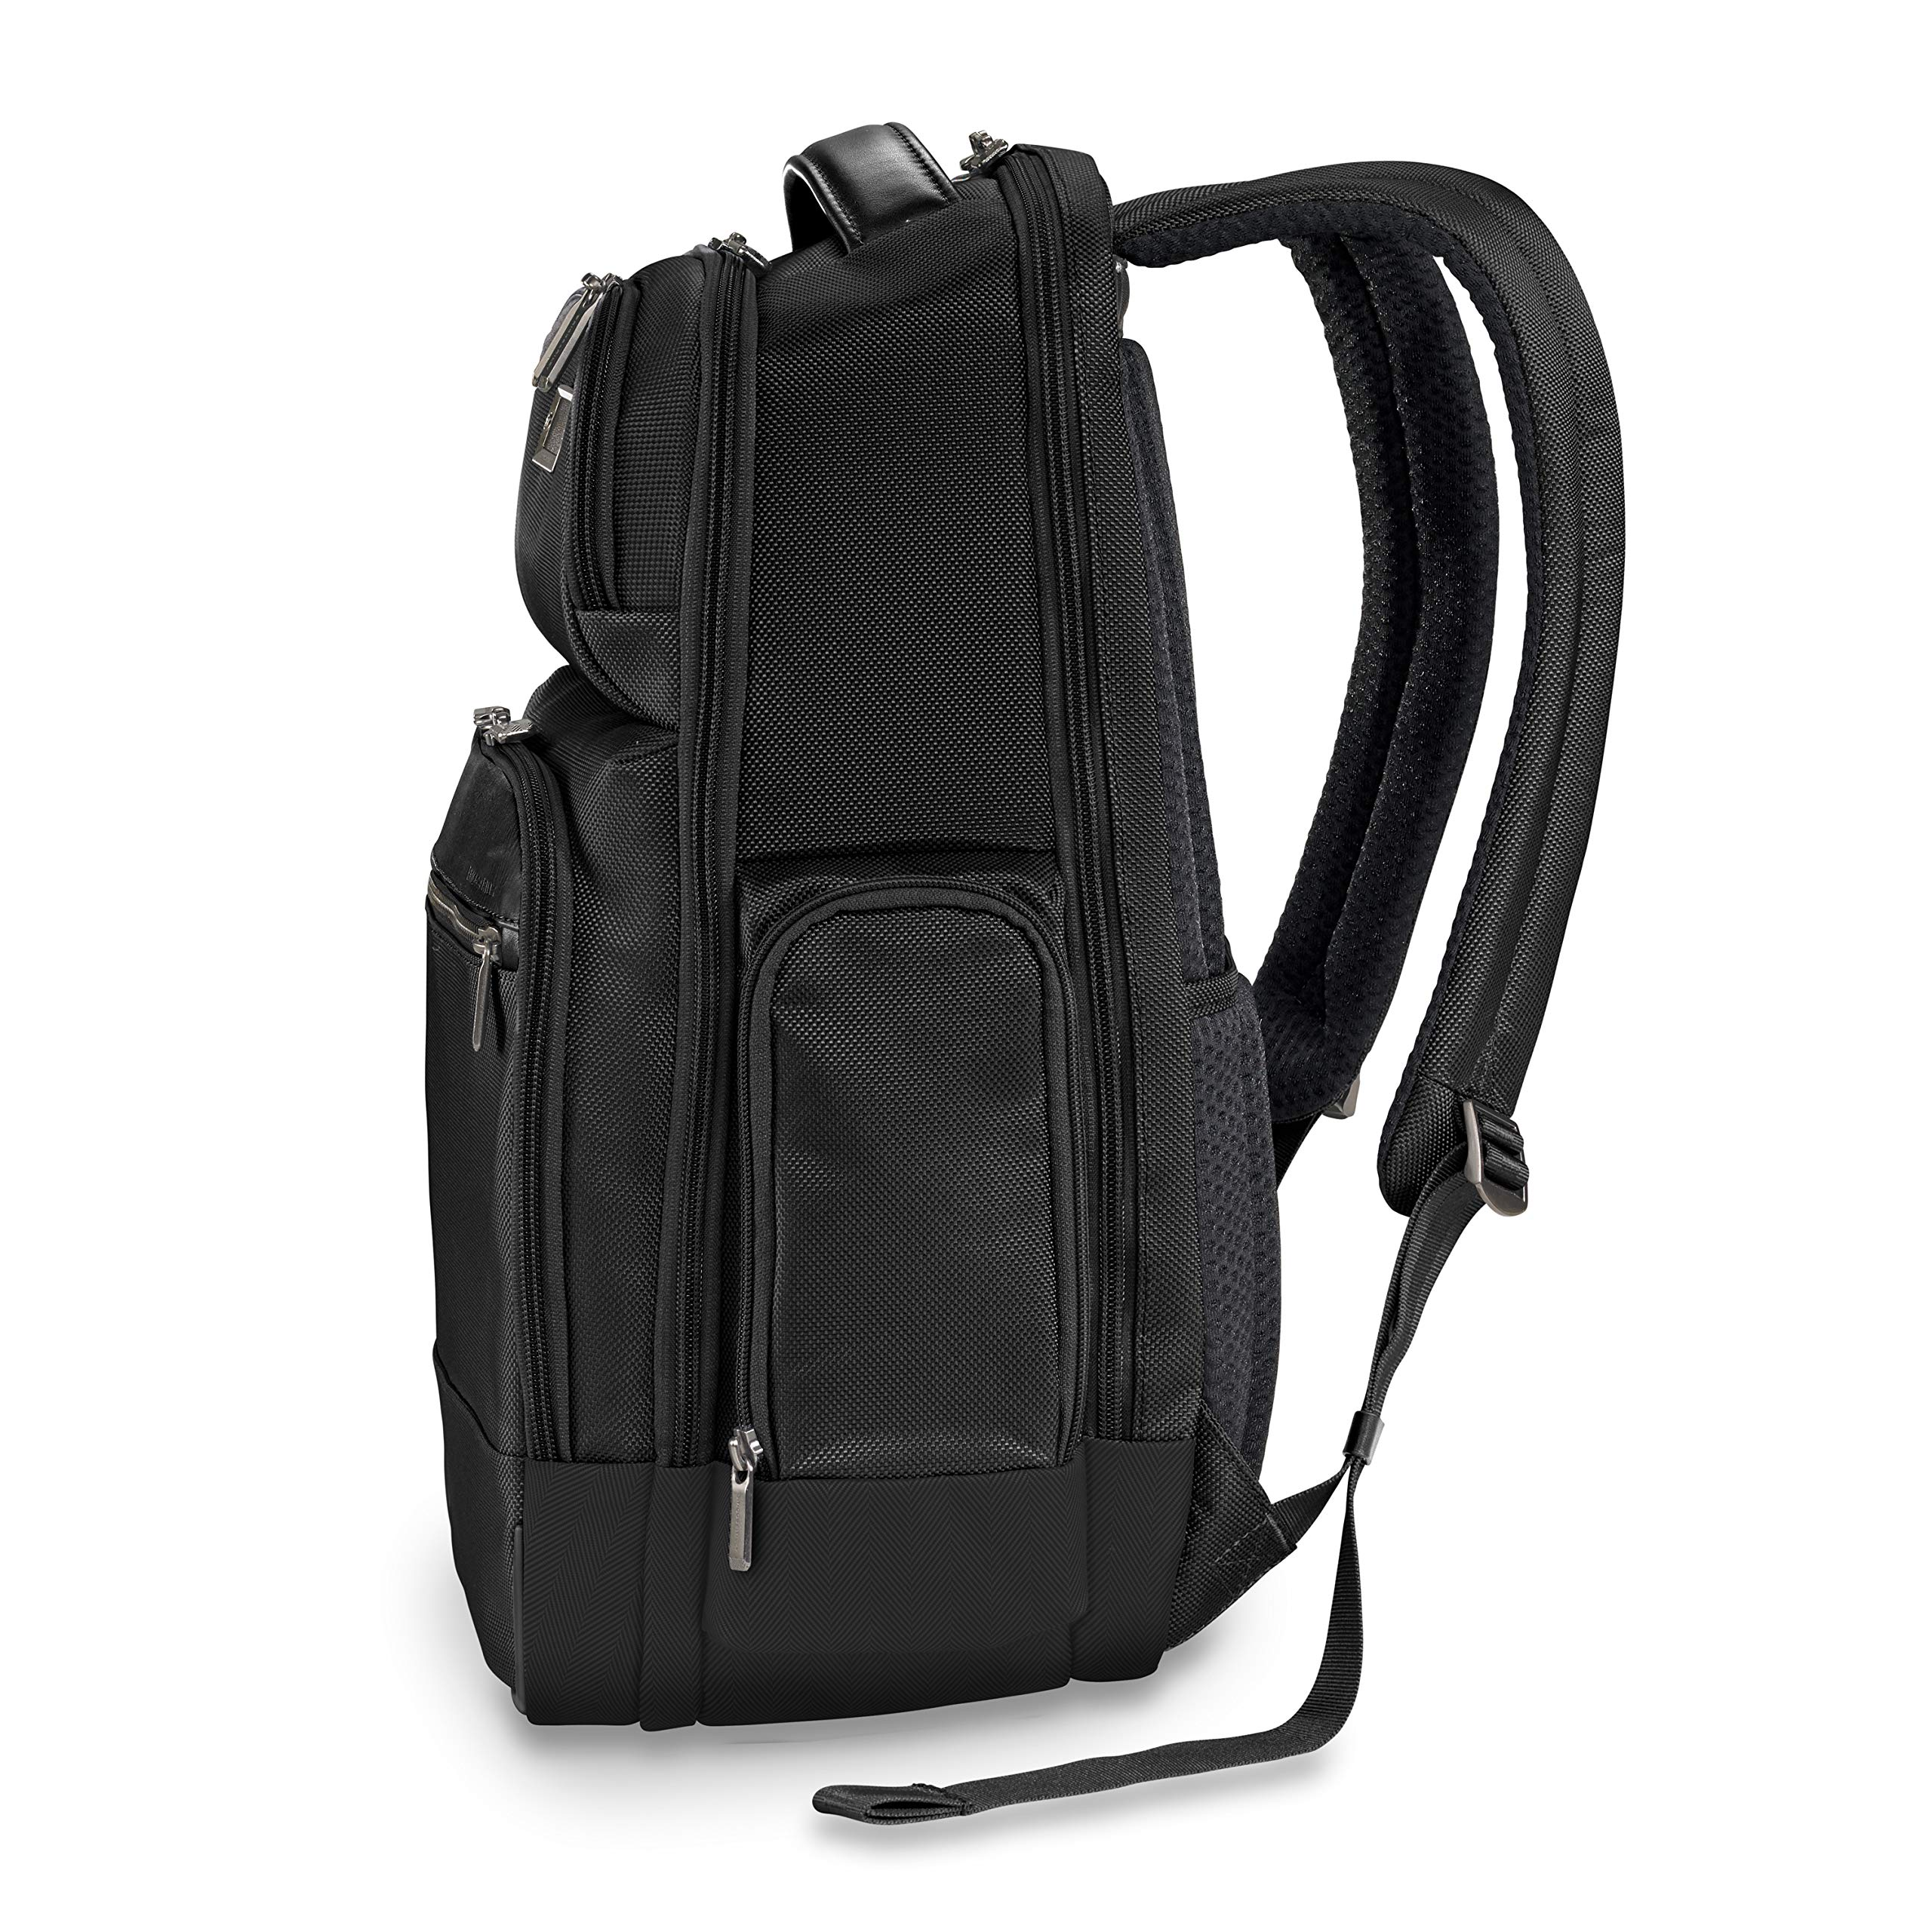 Briggs & Riley @work Medium Cargo Backpack, Black by Briggs & Riley (Image #6)